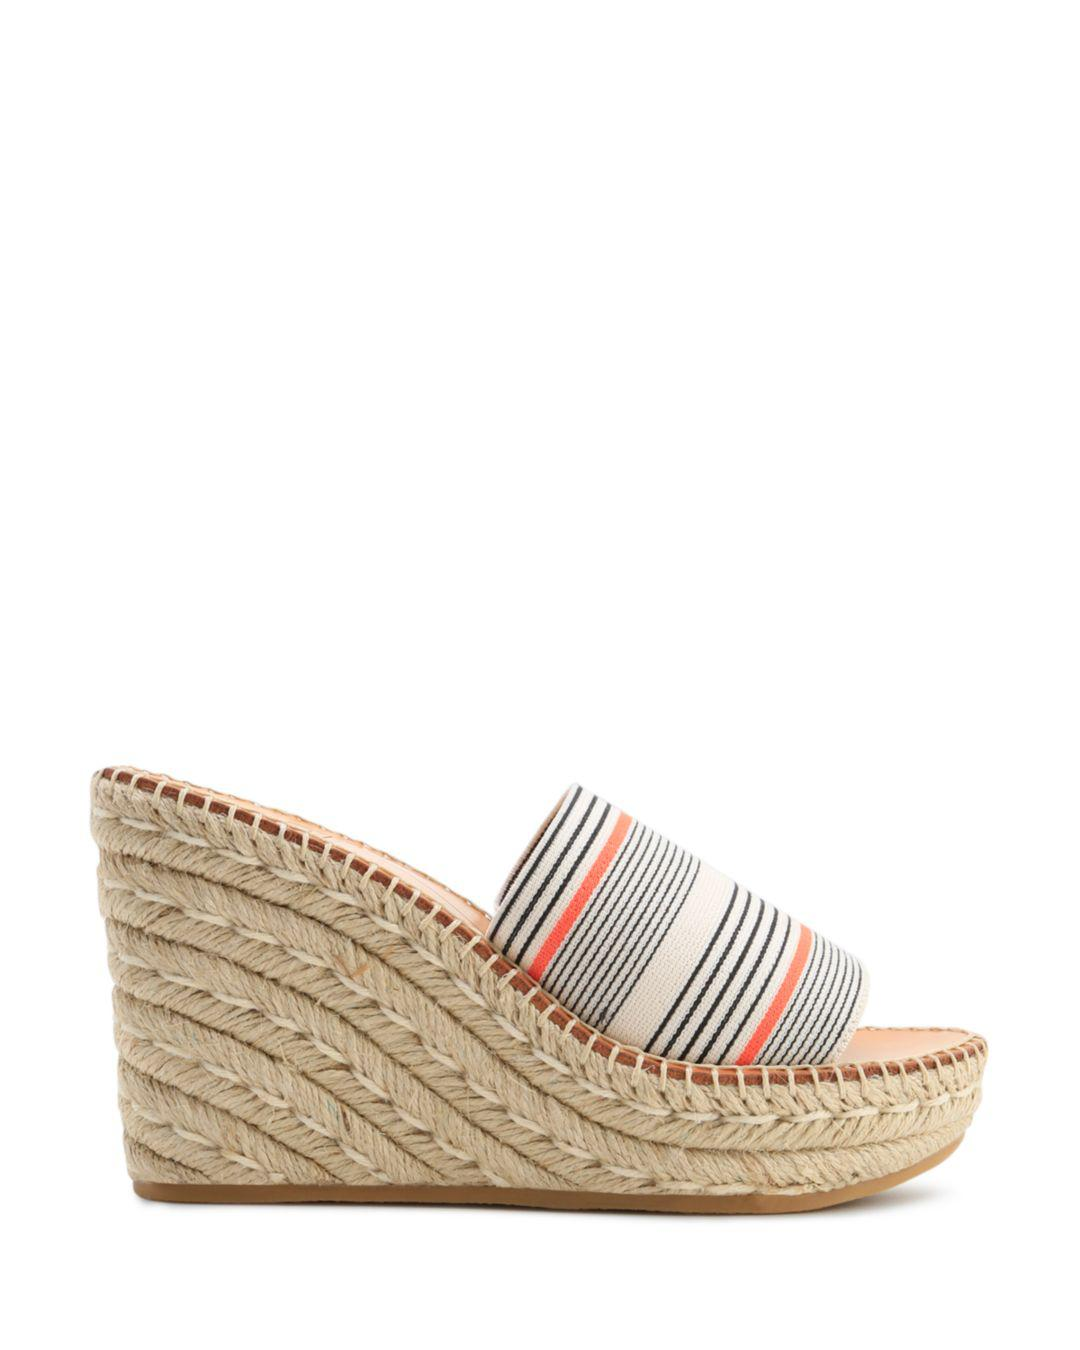 9e5b41c85f6 Gallery. Previously sold at  Bloomingdale s · Women s White Platform Wedges  ...